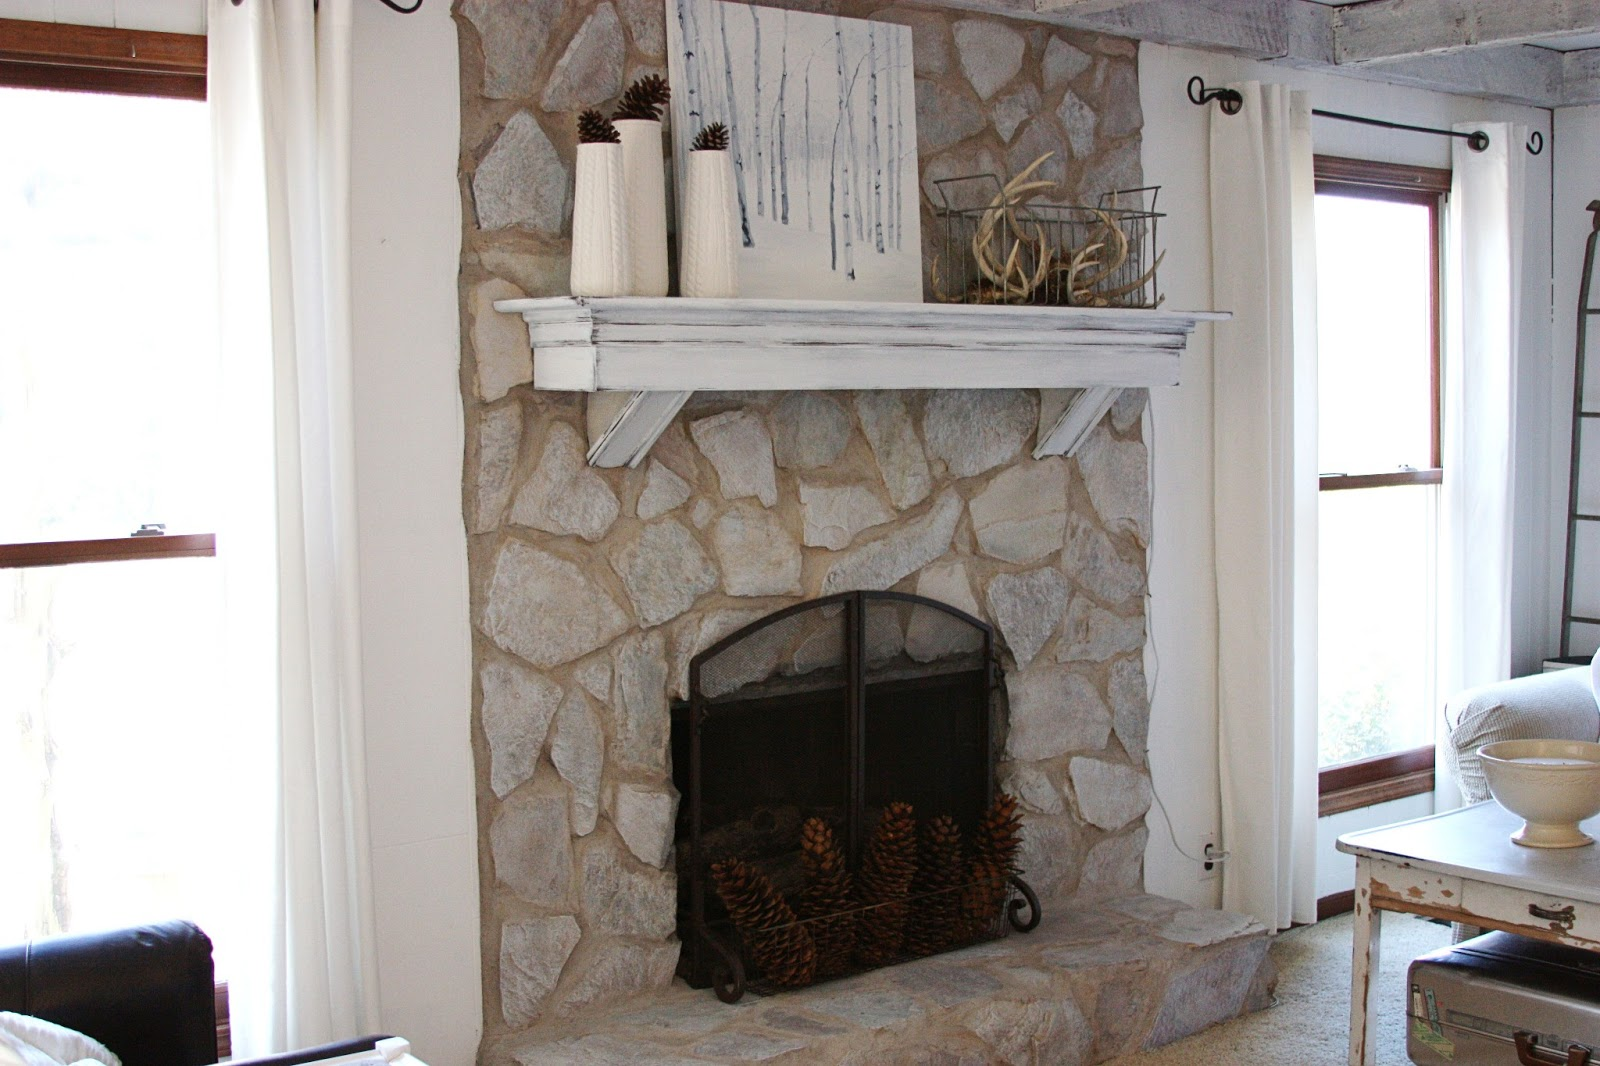 What to Expect from White Stone Fireplace : How To Paint A Stone Fireplace White. How to paint a stone fireplace white. white